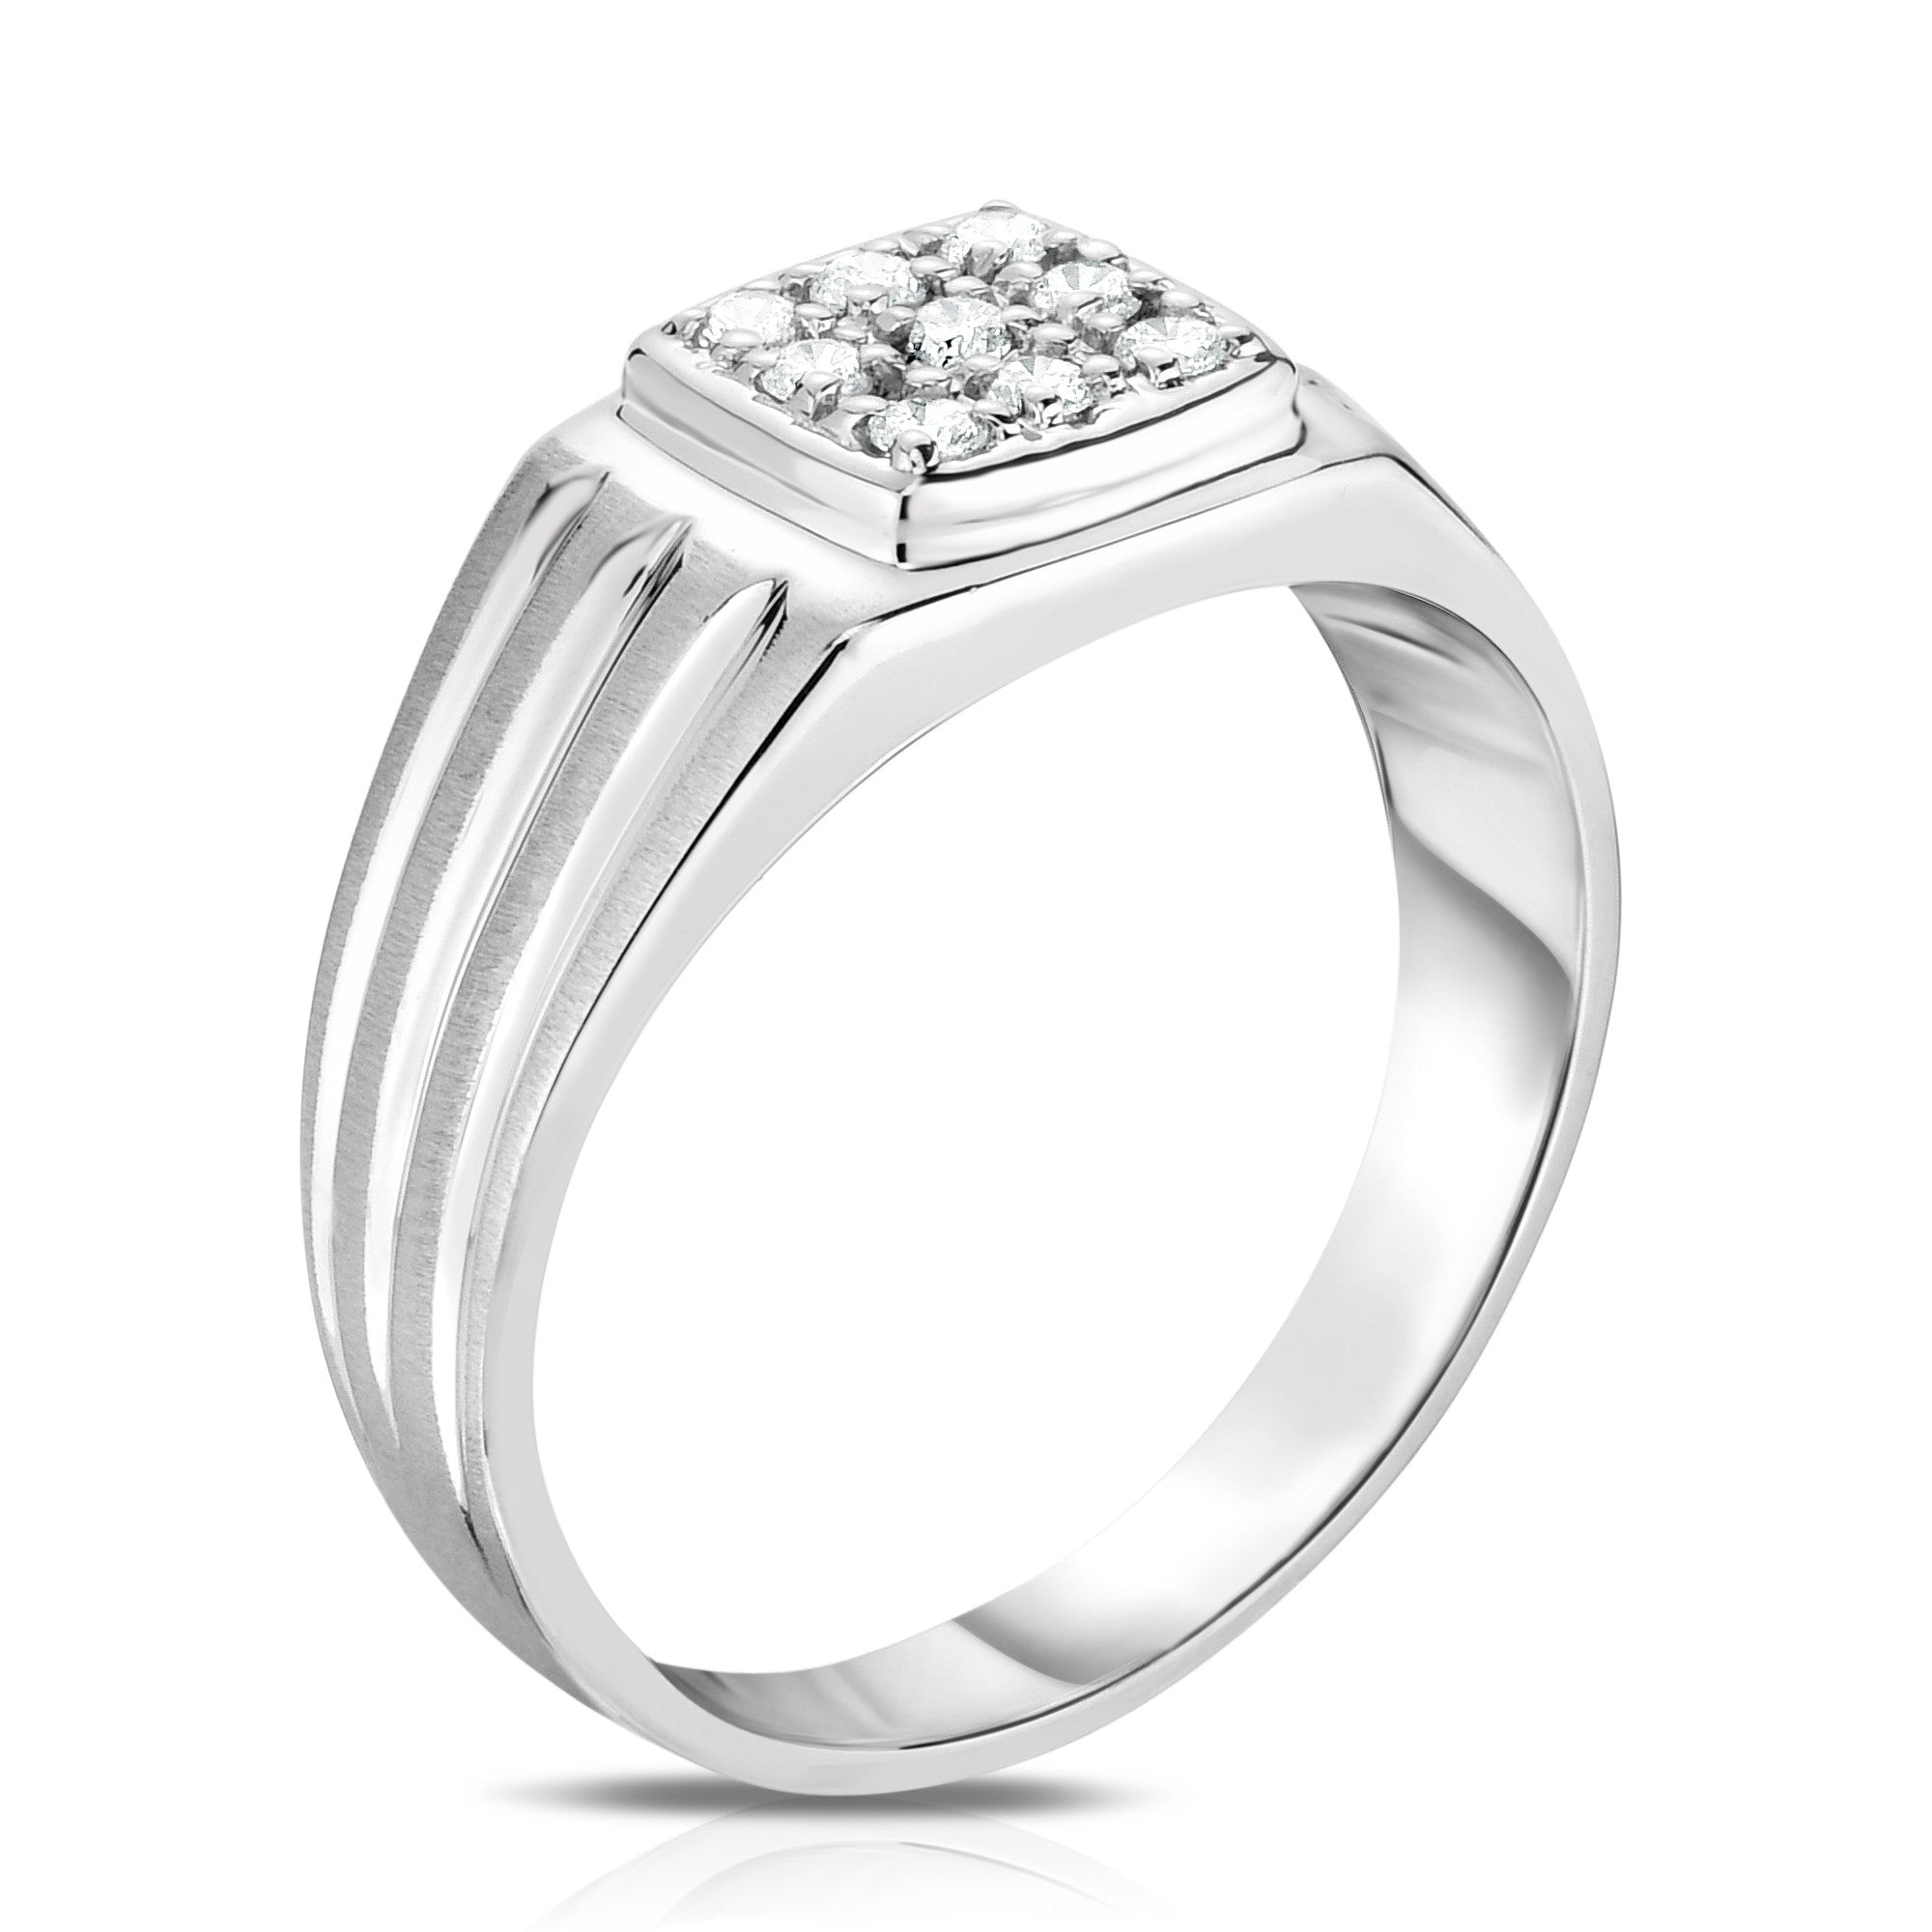 on wedding sterling product zirconia overstock rings watches free shipping ring orders jewelry cubic over gents silver